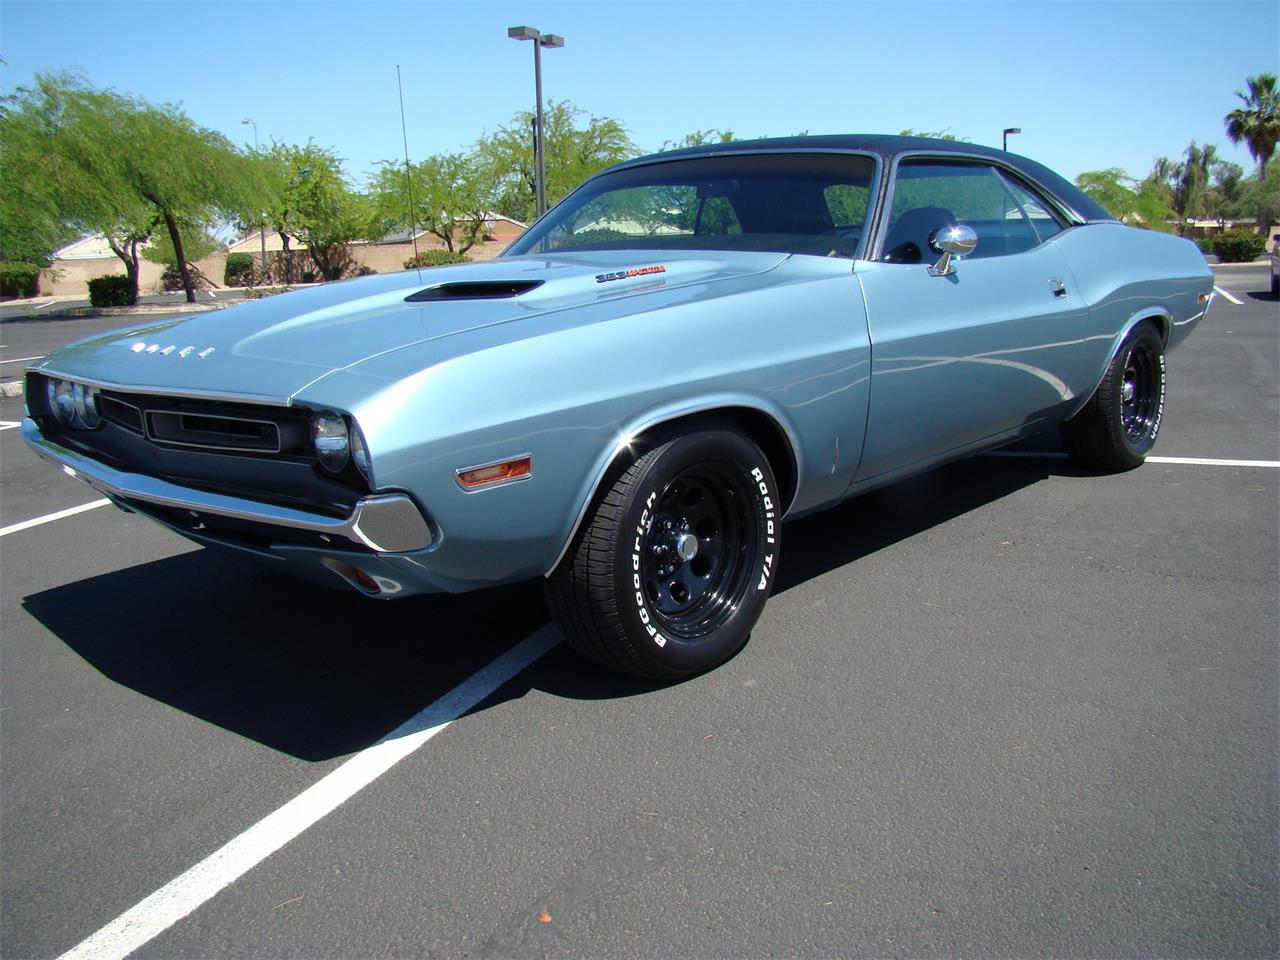 Large Picture of Classic '70 Dodge Challenger located in Phoenix Arizona - $20,000.00 Offered by a Private Seller - M4T9